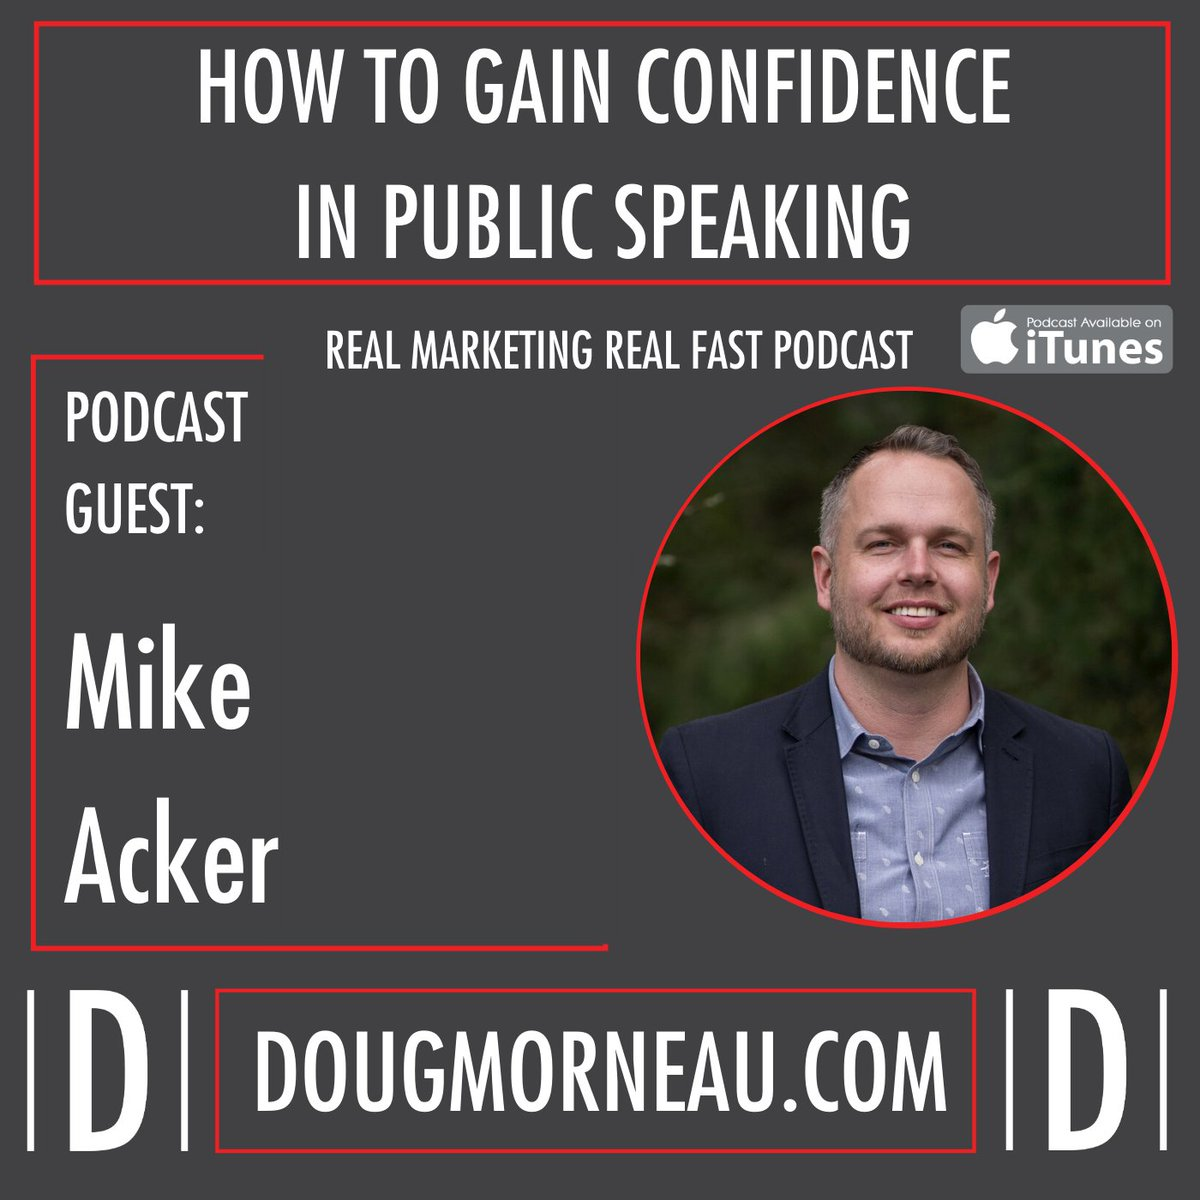 If you are uncomfortable with how you sound or how you look, then the moment on stage where you feel a little bit insecure. http://ed.gr/cbyzz  Mike Acker @mike_acker #RMRF @realmarketingrf #publicspeaking #leadership #Toastmasterspic.twitter.com/a8IYZv81Pc